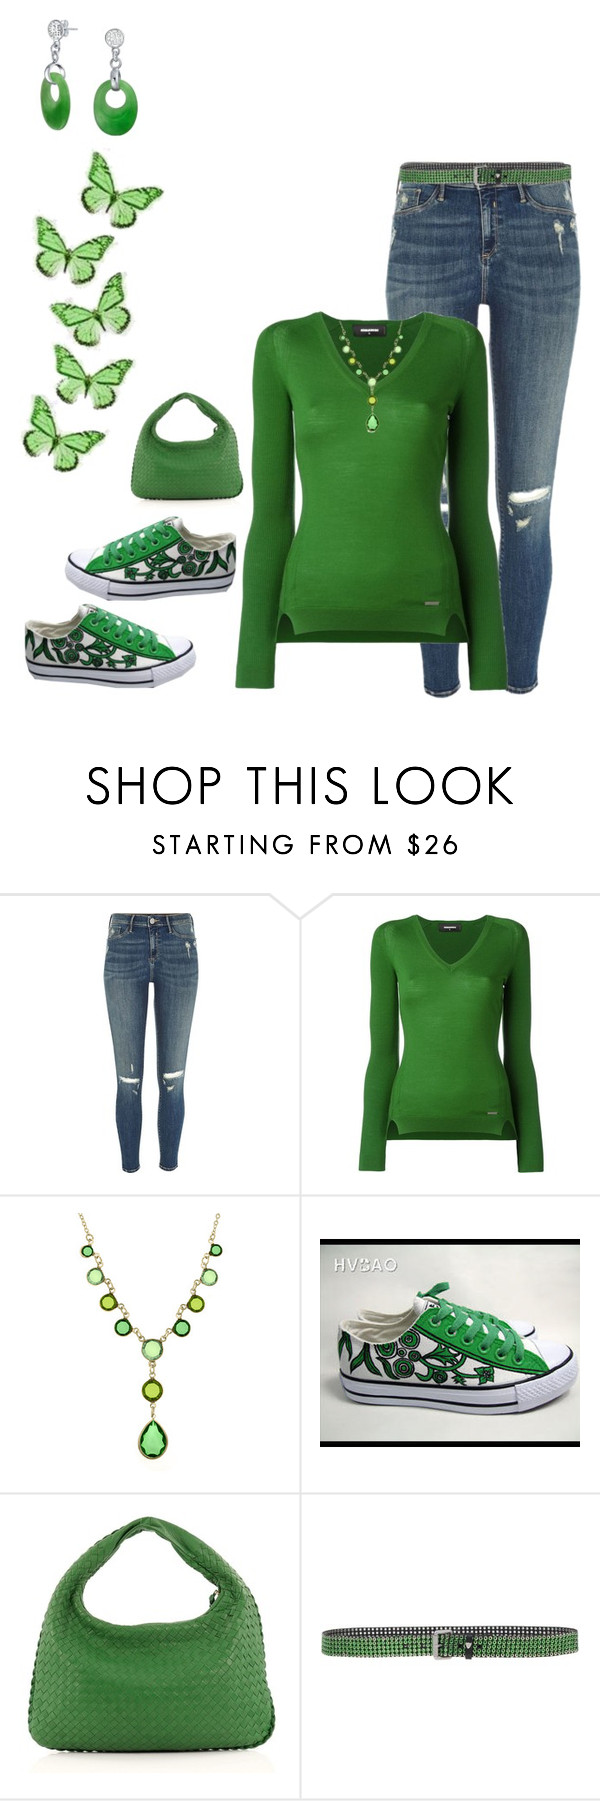 """""""Green"""" by smith-1979 ❤ liked on Polyvore featuring River Island, Dsquared2, HVBAO, Bottega Veneta and HTC"""